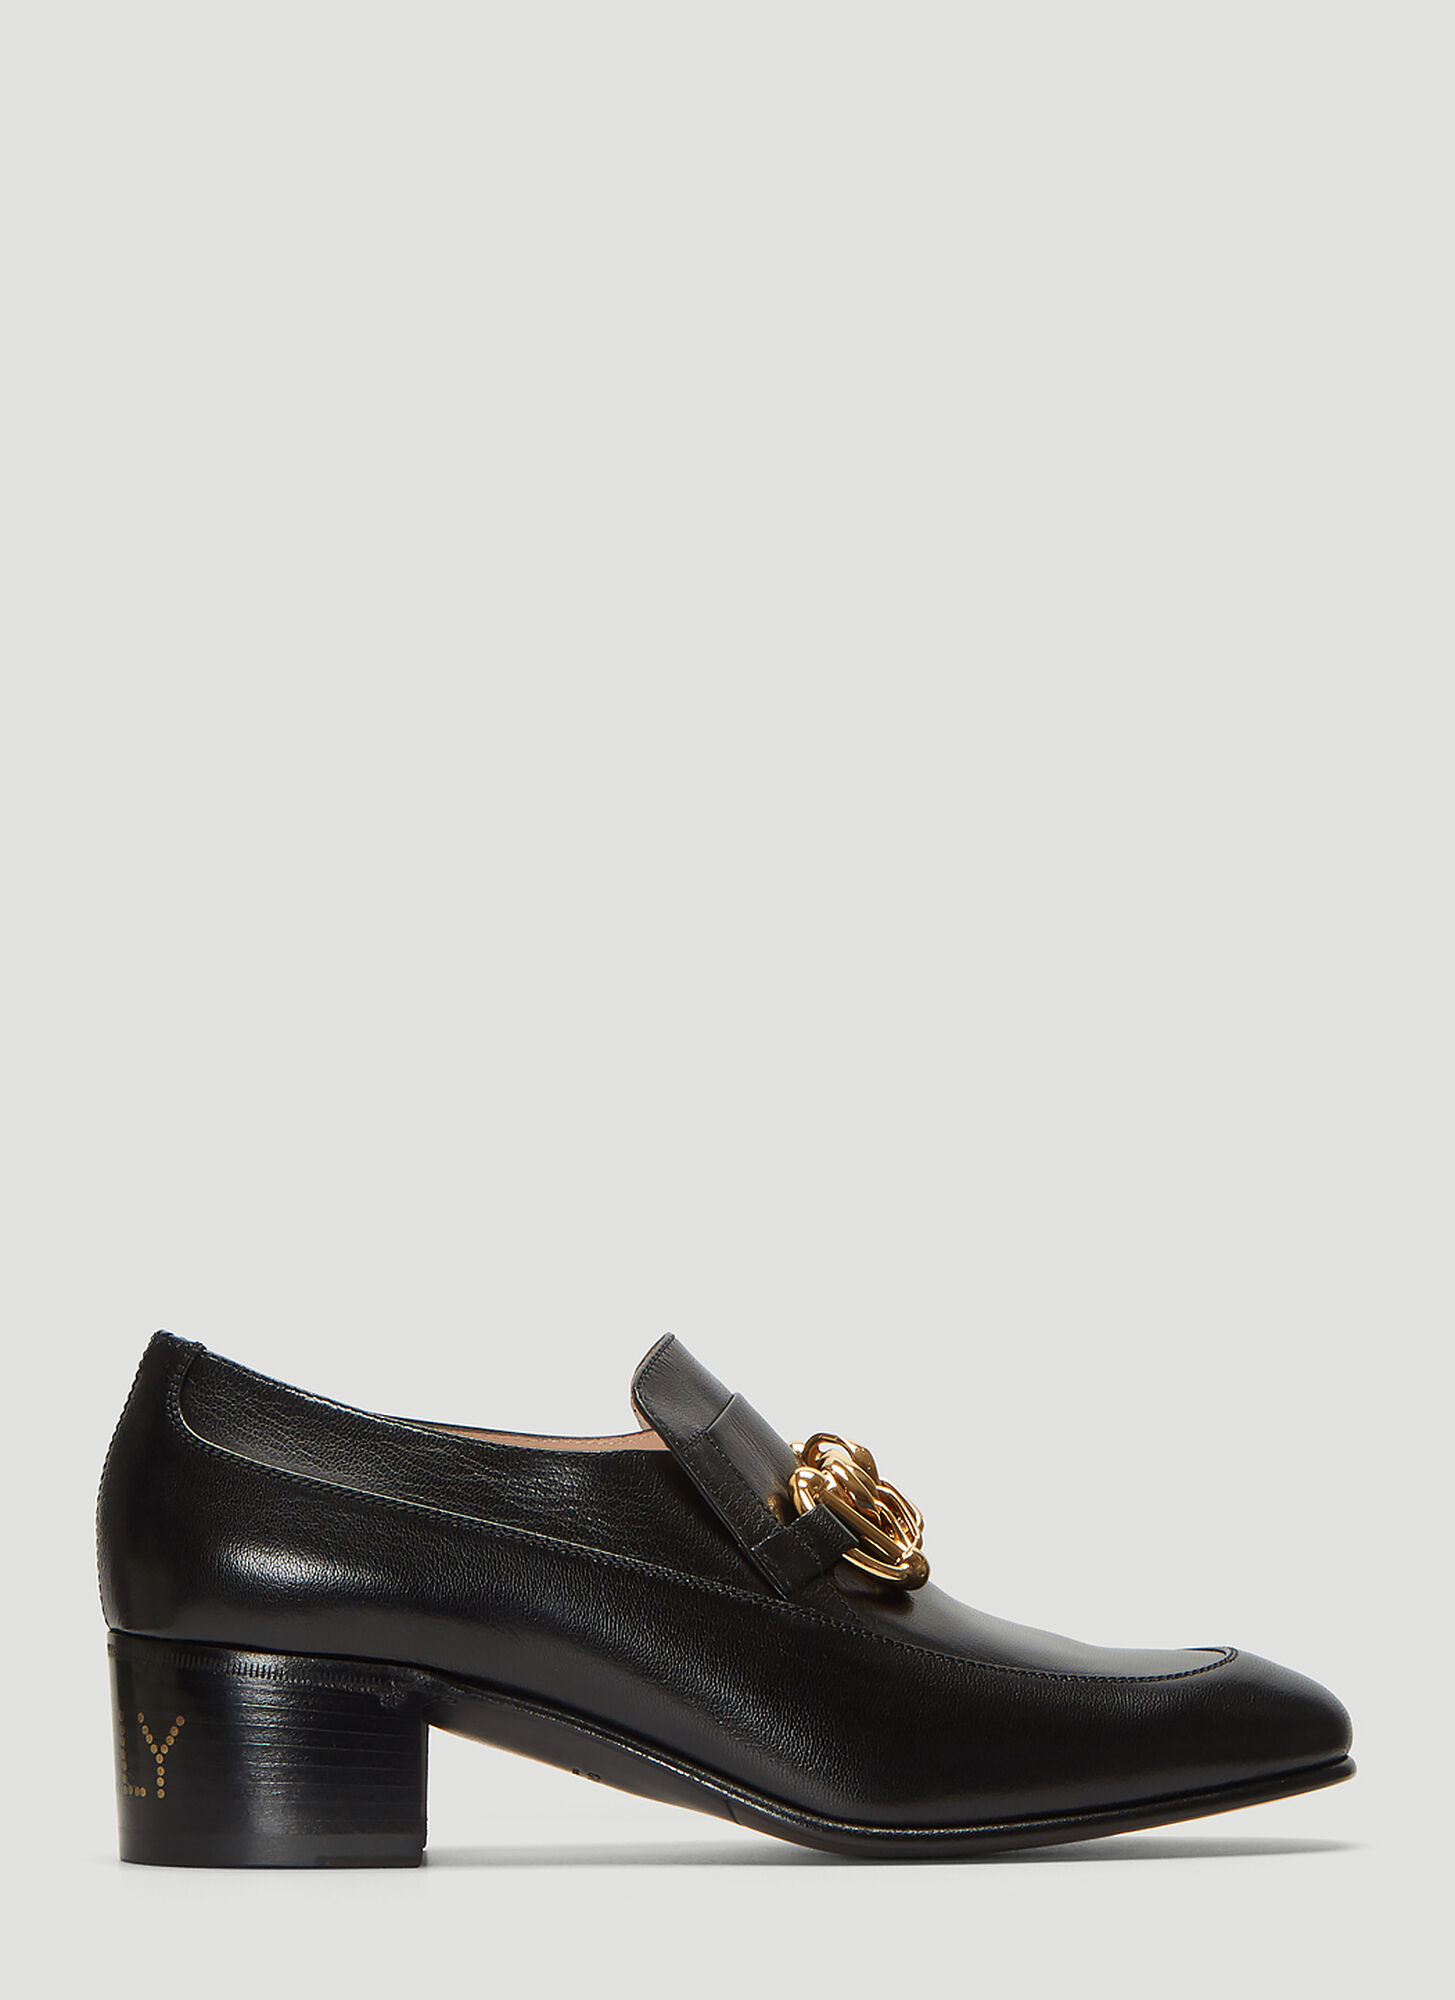 Gucci Ice Lolly Leather Chain Loafers in Black